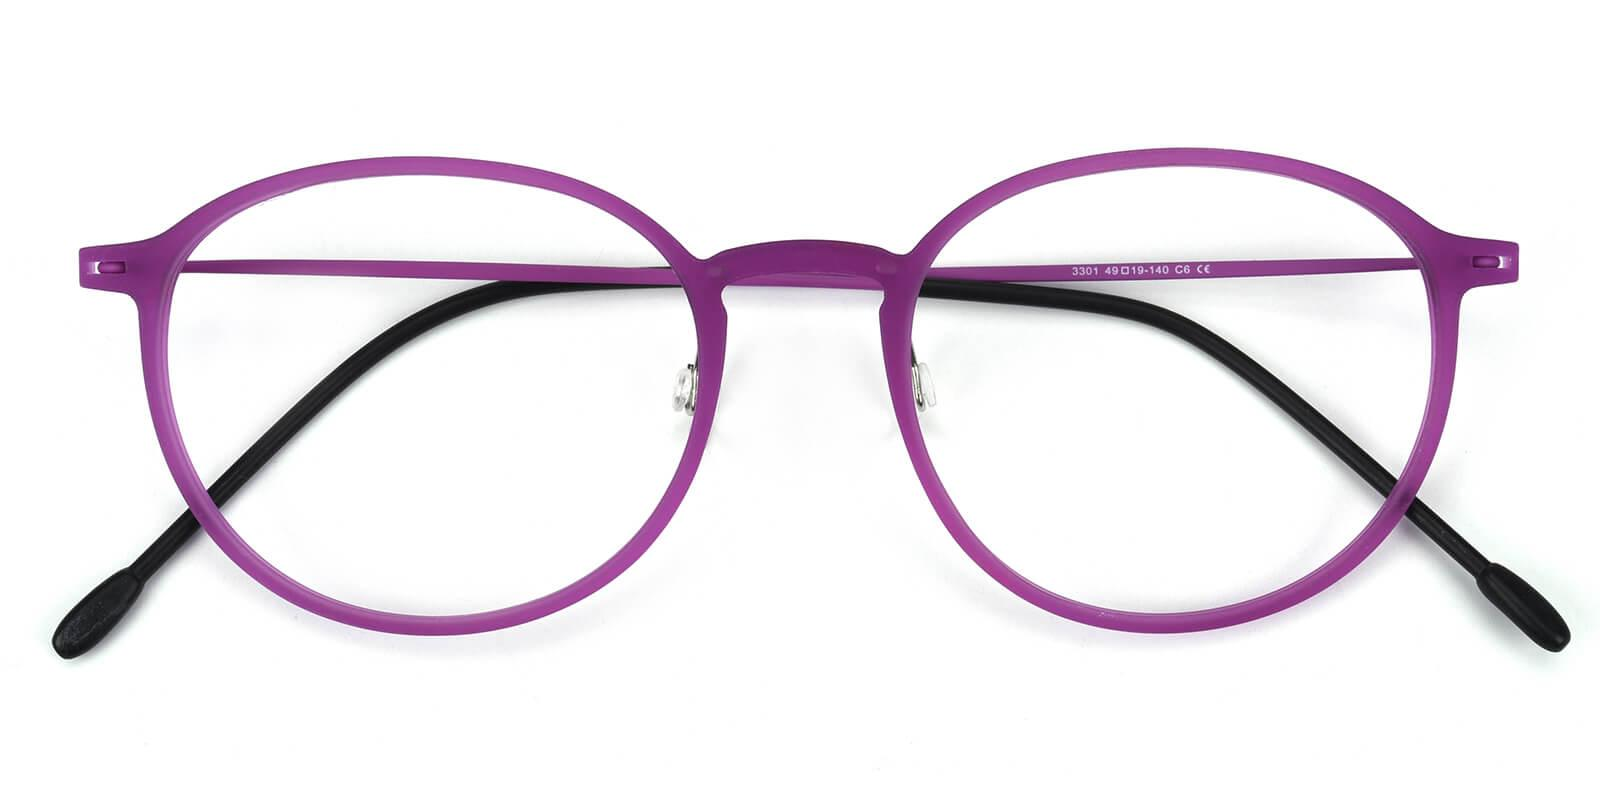 Yunda-Purple-Round-Combination-Eyeglasses-detail